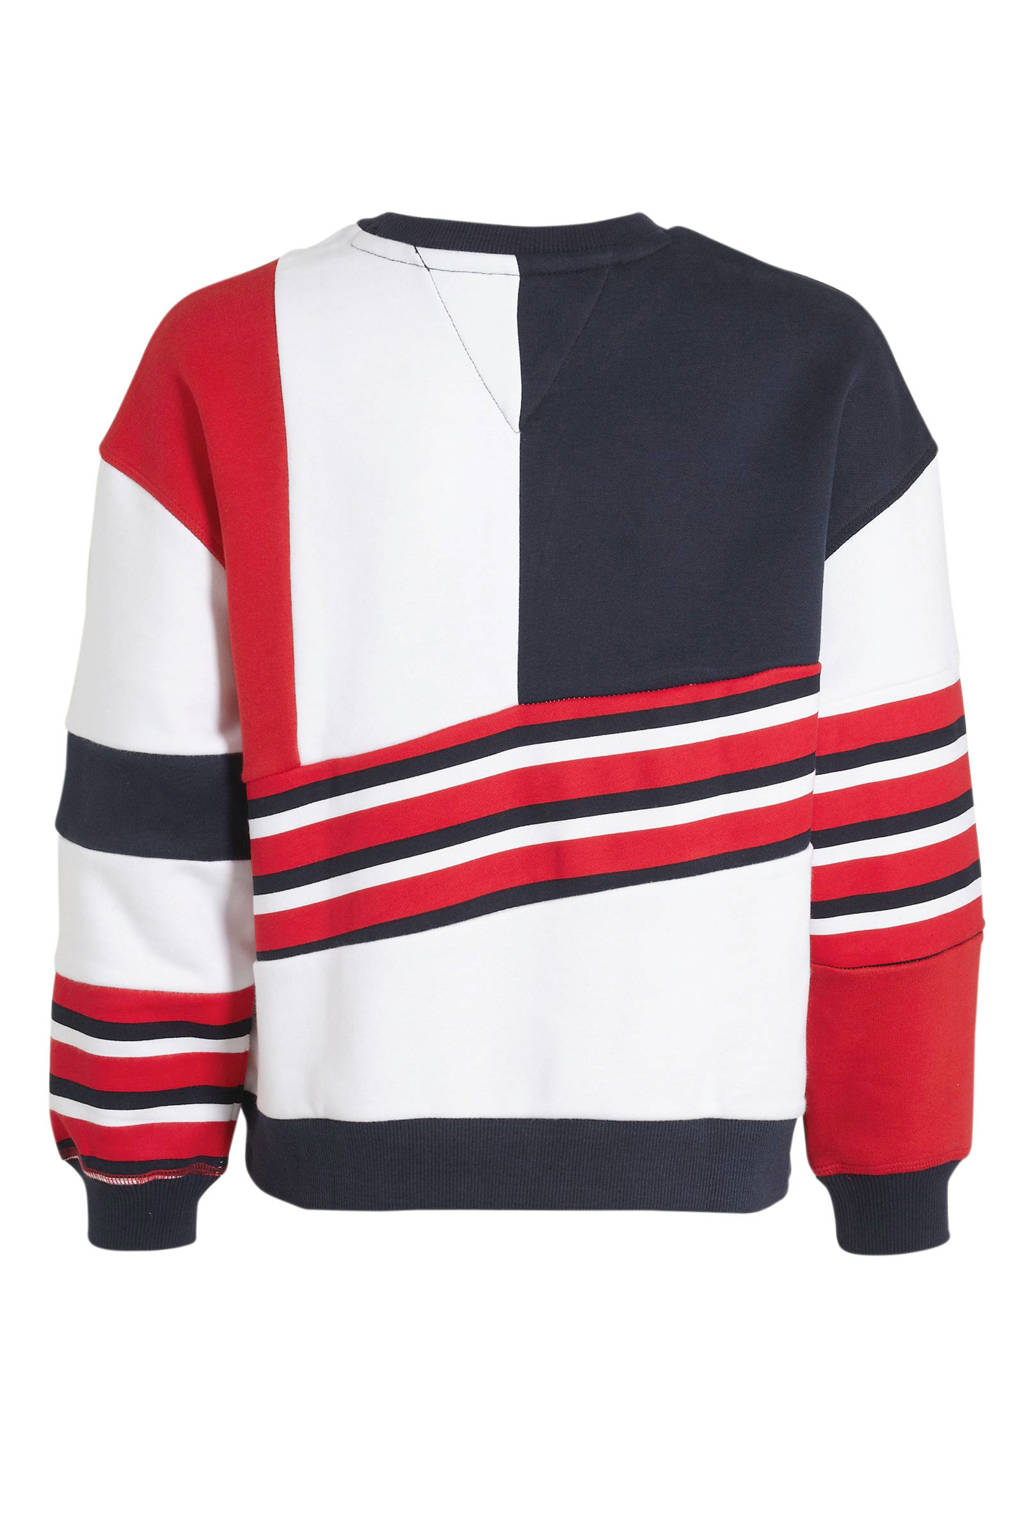 Tommy Hilfiger oversized sweater wit/rood/donkerblauw